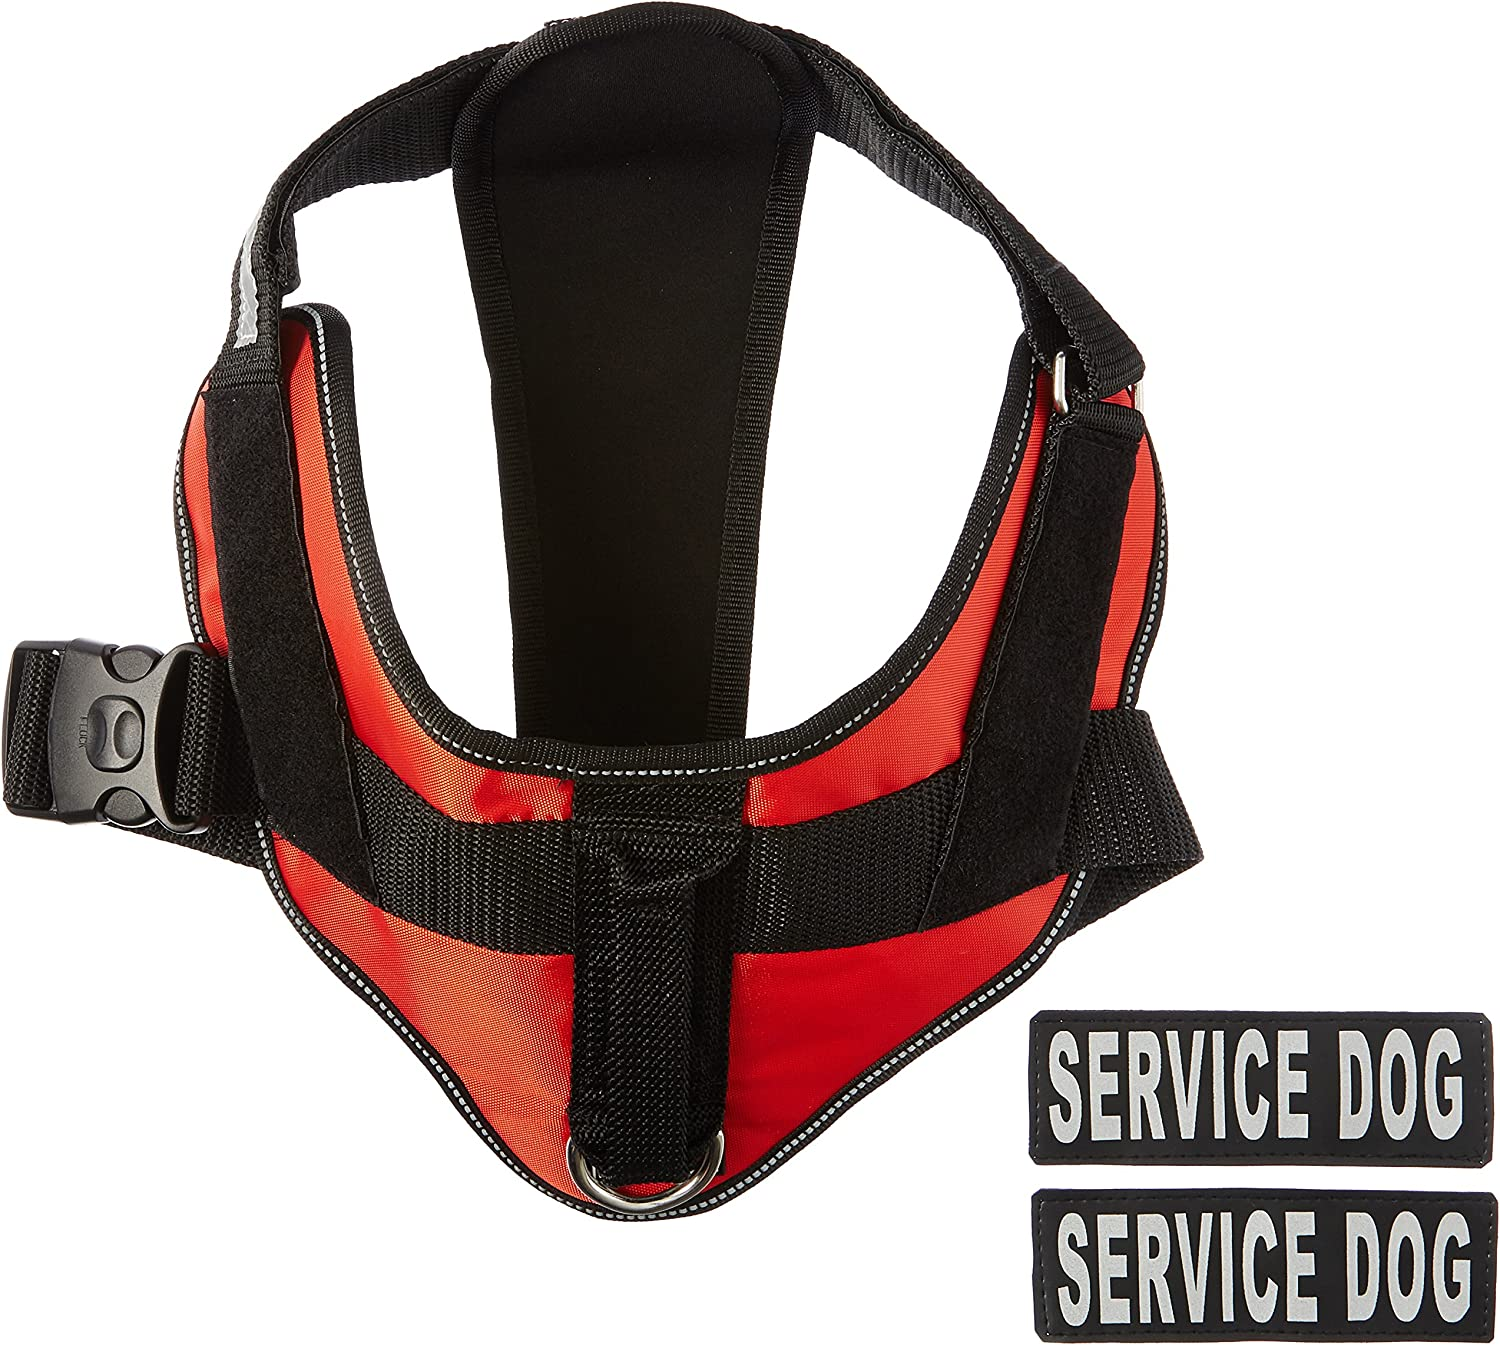 Dogline Alpha Nylon Service Vest Fixed price for sale Search Rescue Harness New product! New type with Ve